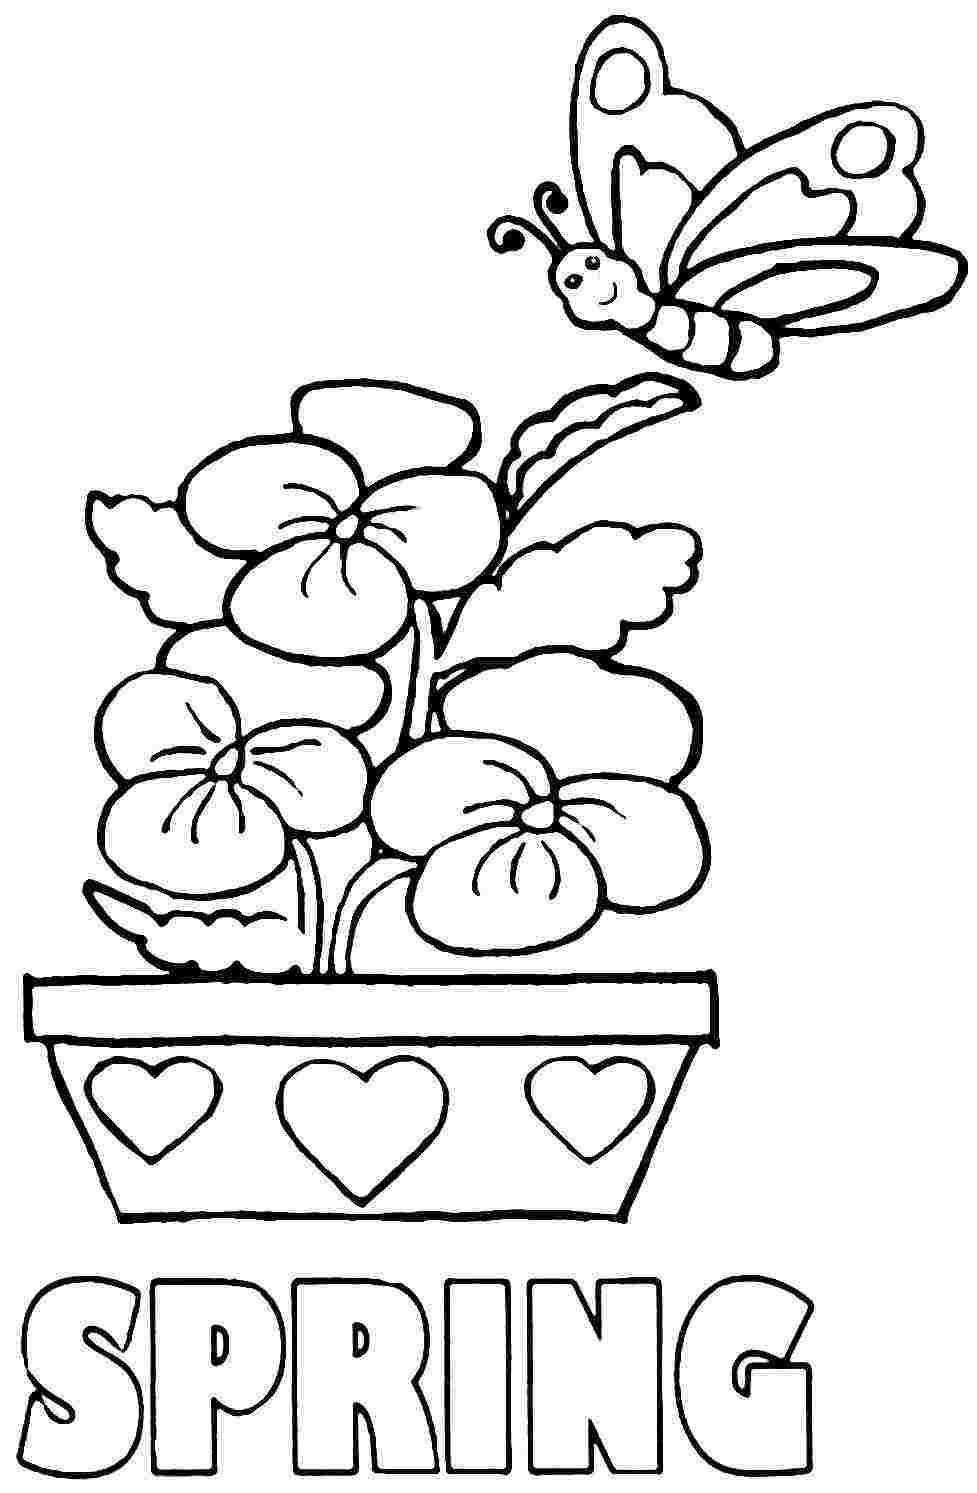 Free Coloring Pages Spring Season In 2020 Kindergarten Coloring Pages Spring Coloring Pages Spring Coloring Sheets